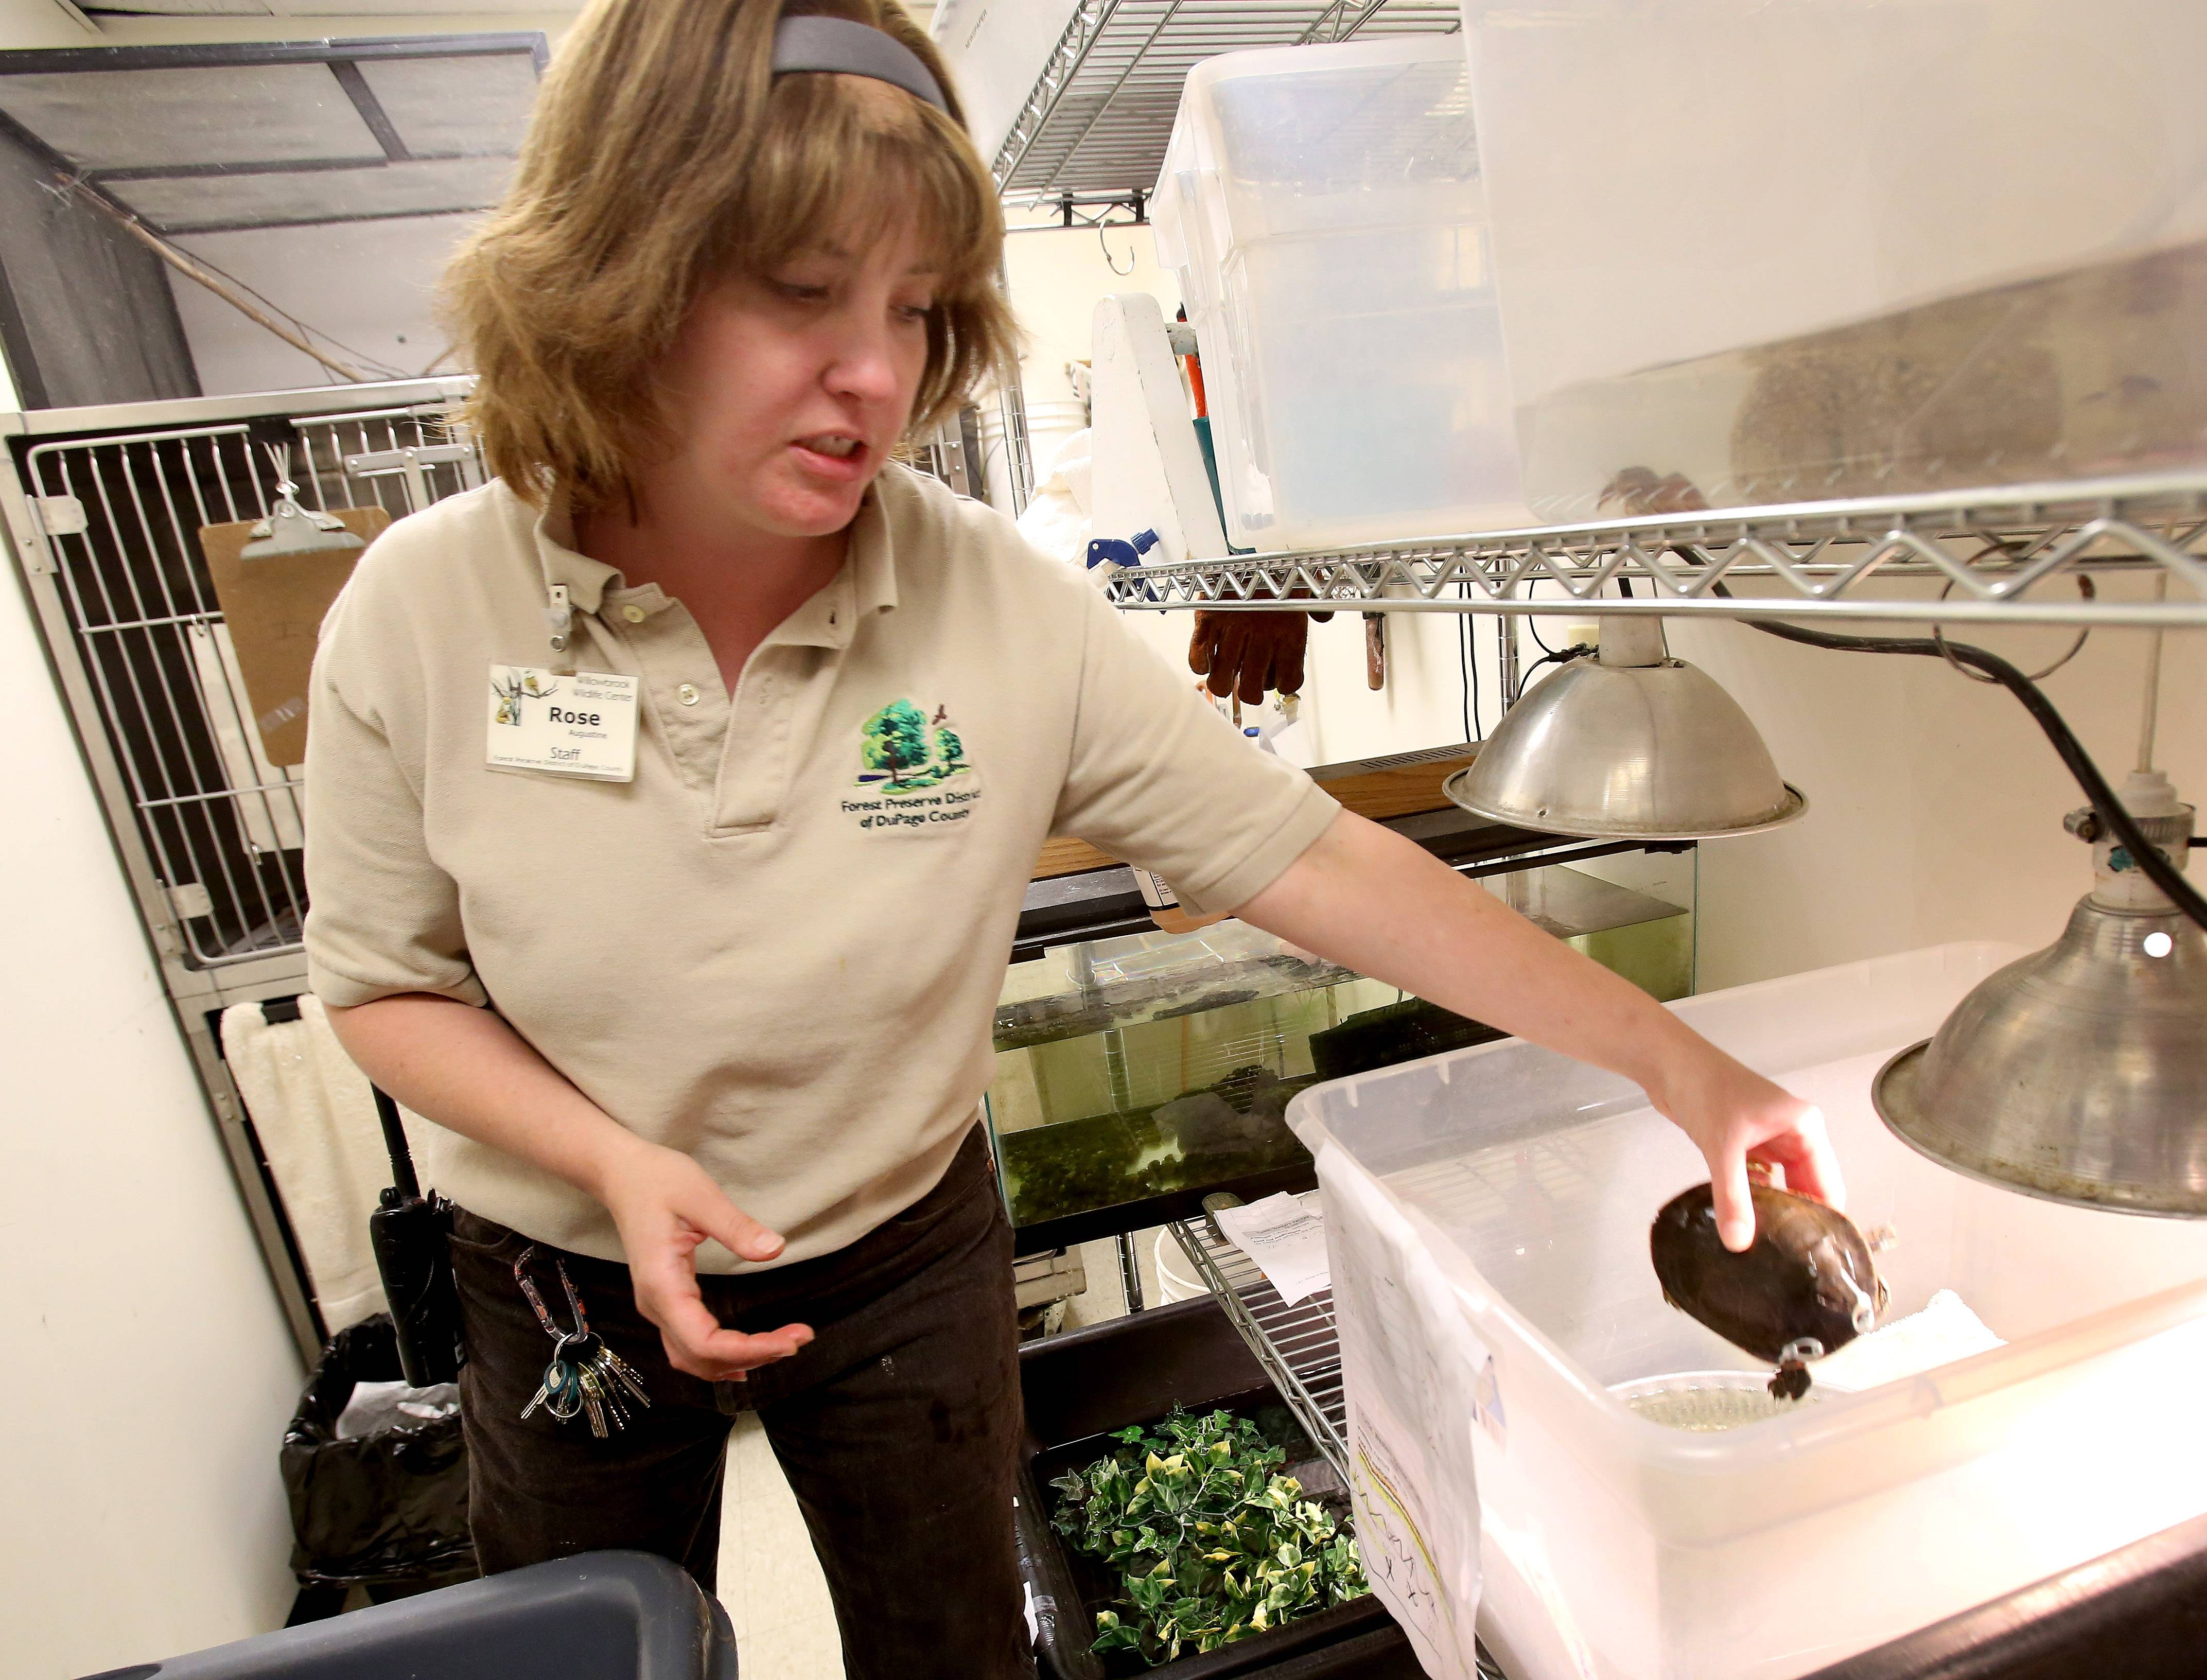 Wildlife specialist Rose Augustine holds an injured painted turtle at Willowbrook Wildlife Center in Glen Ellyn.